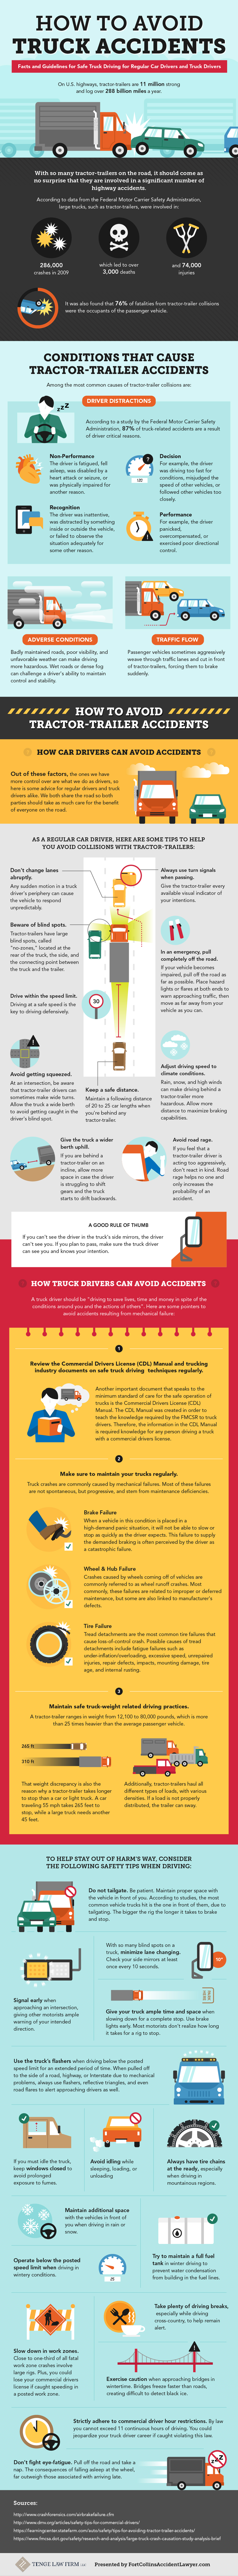 Infographic on Truck Accidents